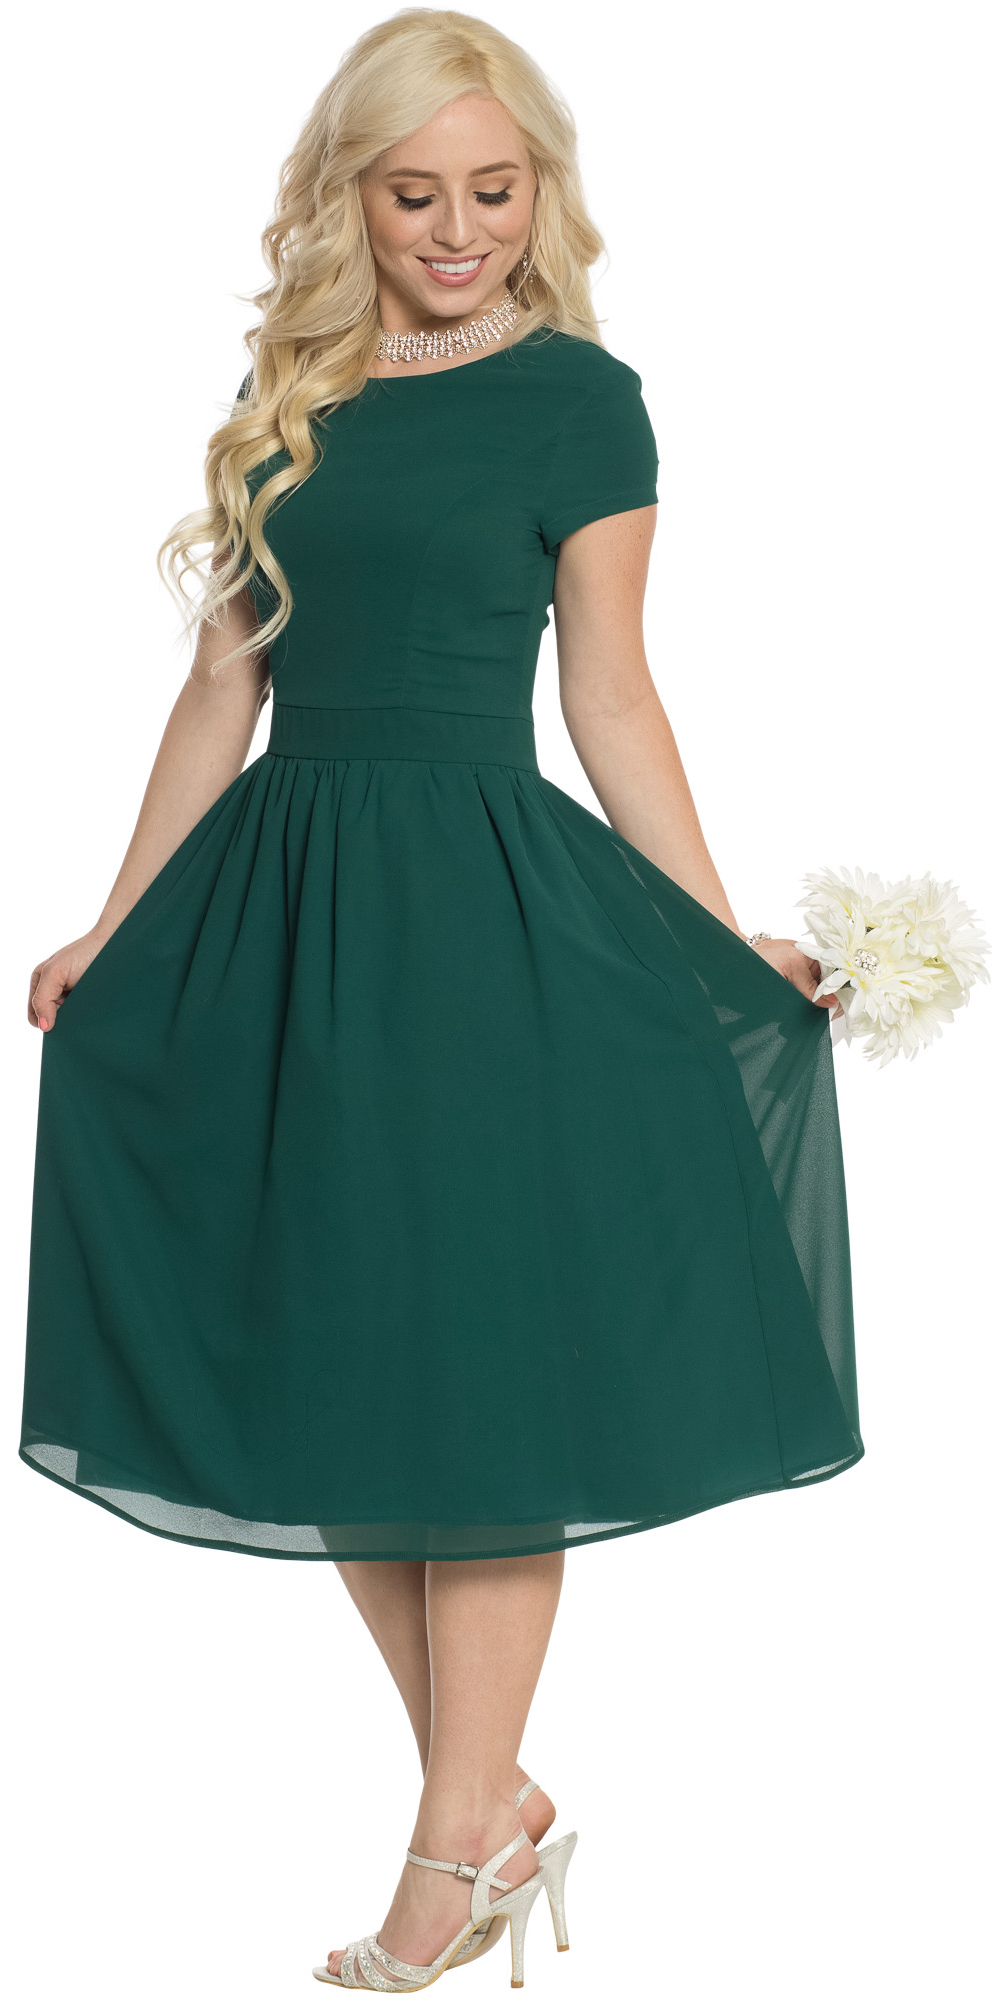 Lucy semi formal modest bridesmaid dress in dark forest green or lucy modest bridesmaid dress in dark forest green emerald ombrellifo Gallery